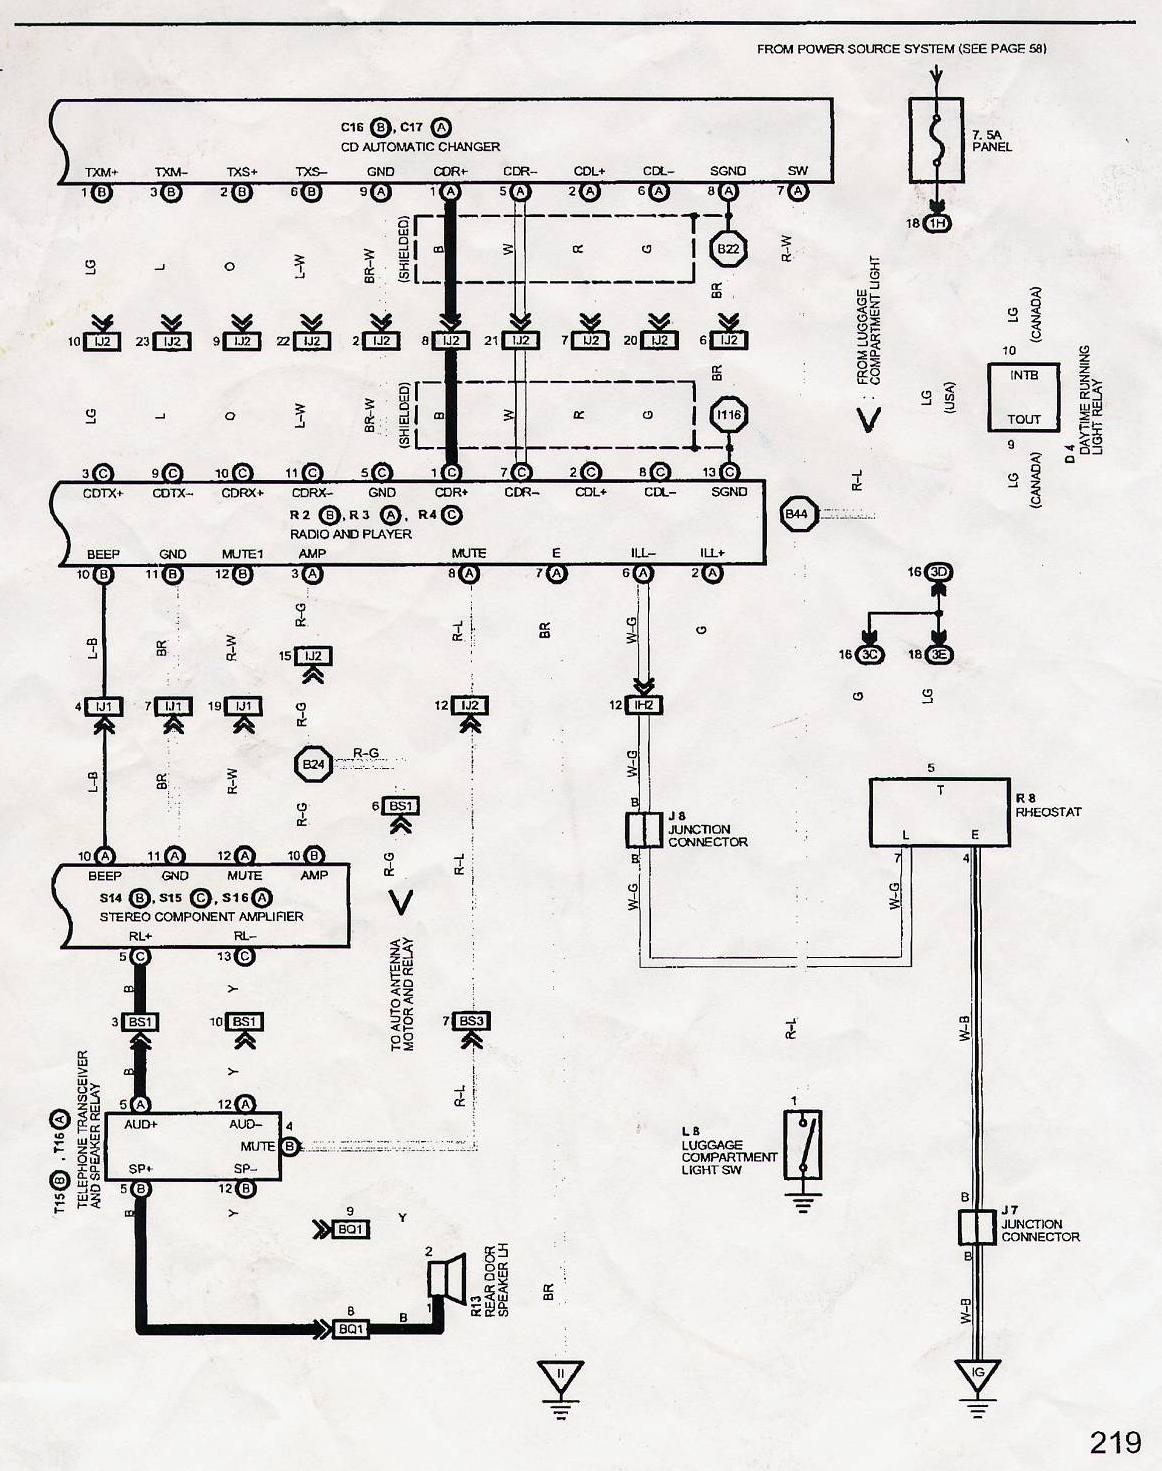 1999 Lexu Ls400 Navigation Wiring Diagram